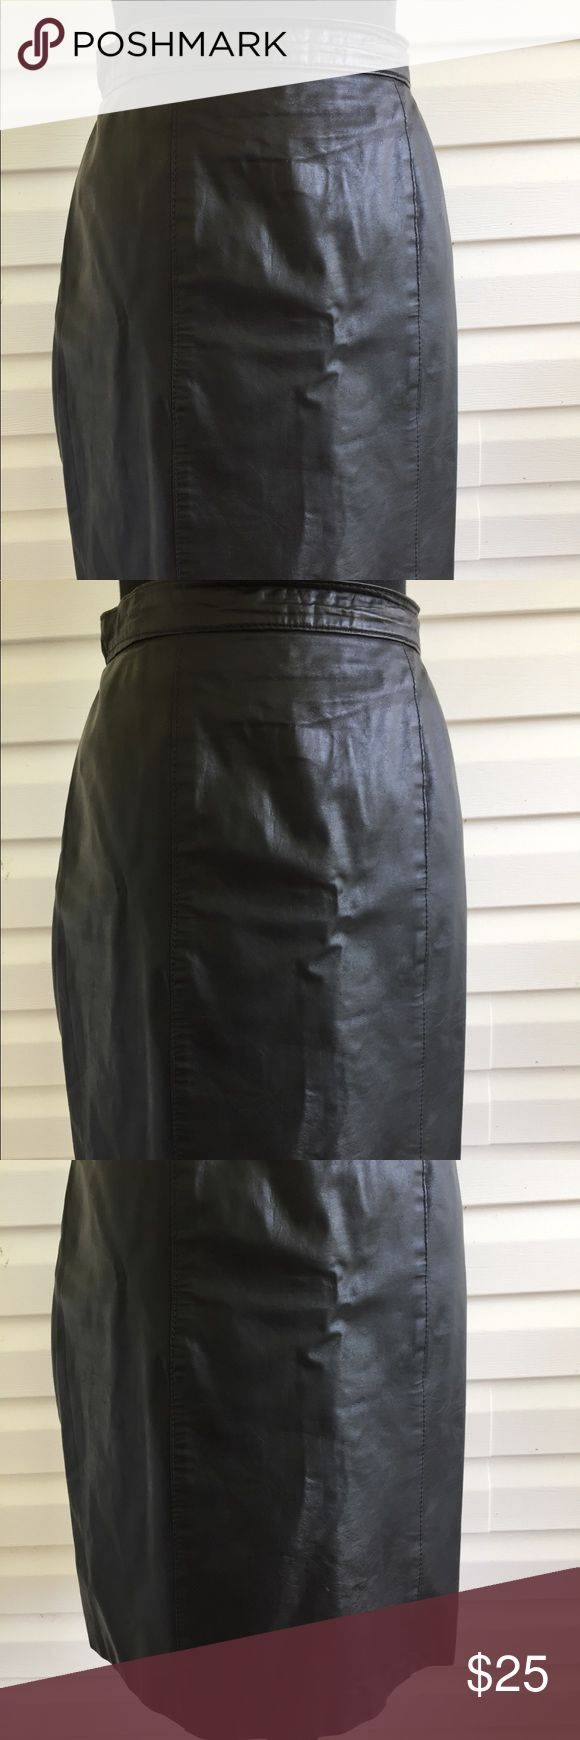 Black COMINT Leather Midi skirt Gorgeous COMINT Leather Midi Skirt Measurements  Waist 30 Hips 42 Length 22 inches from hem to hem comint Skirts Midi